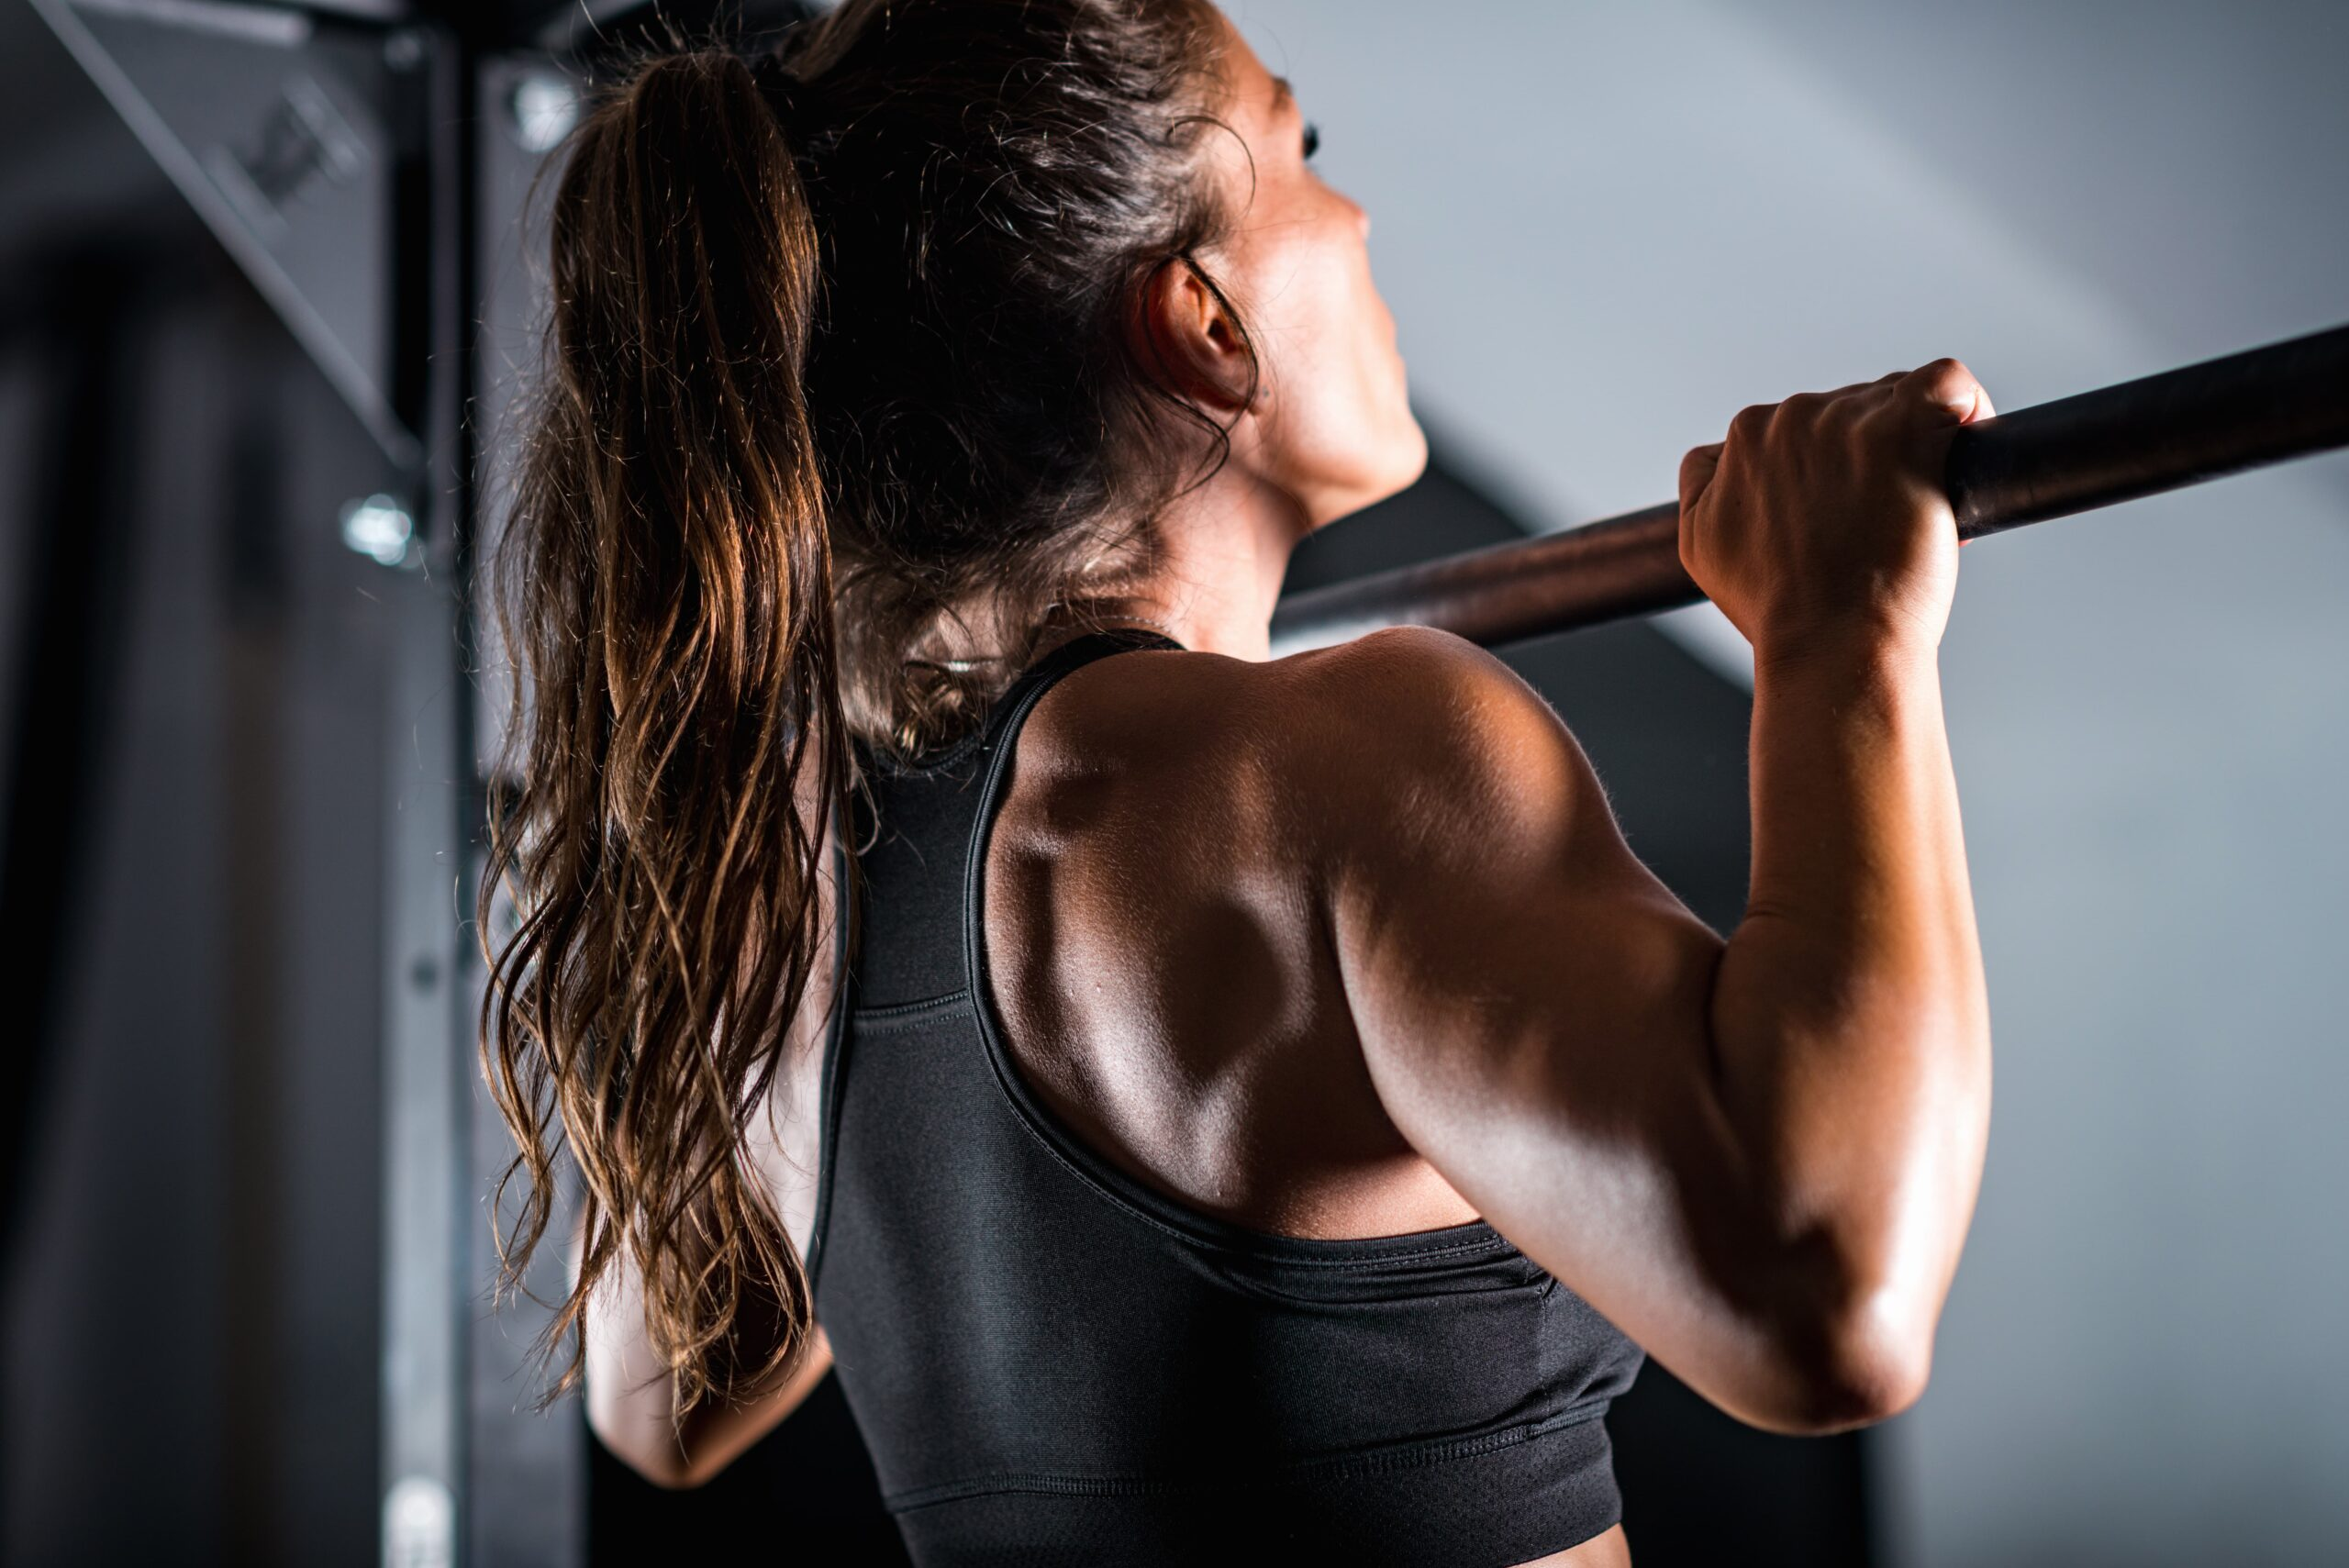 How Women Can Build Up To Doing Pull Ups